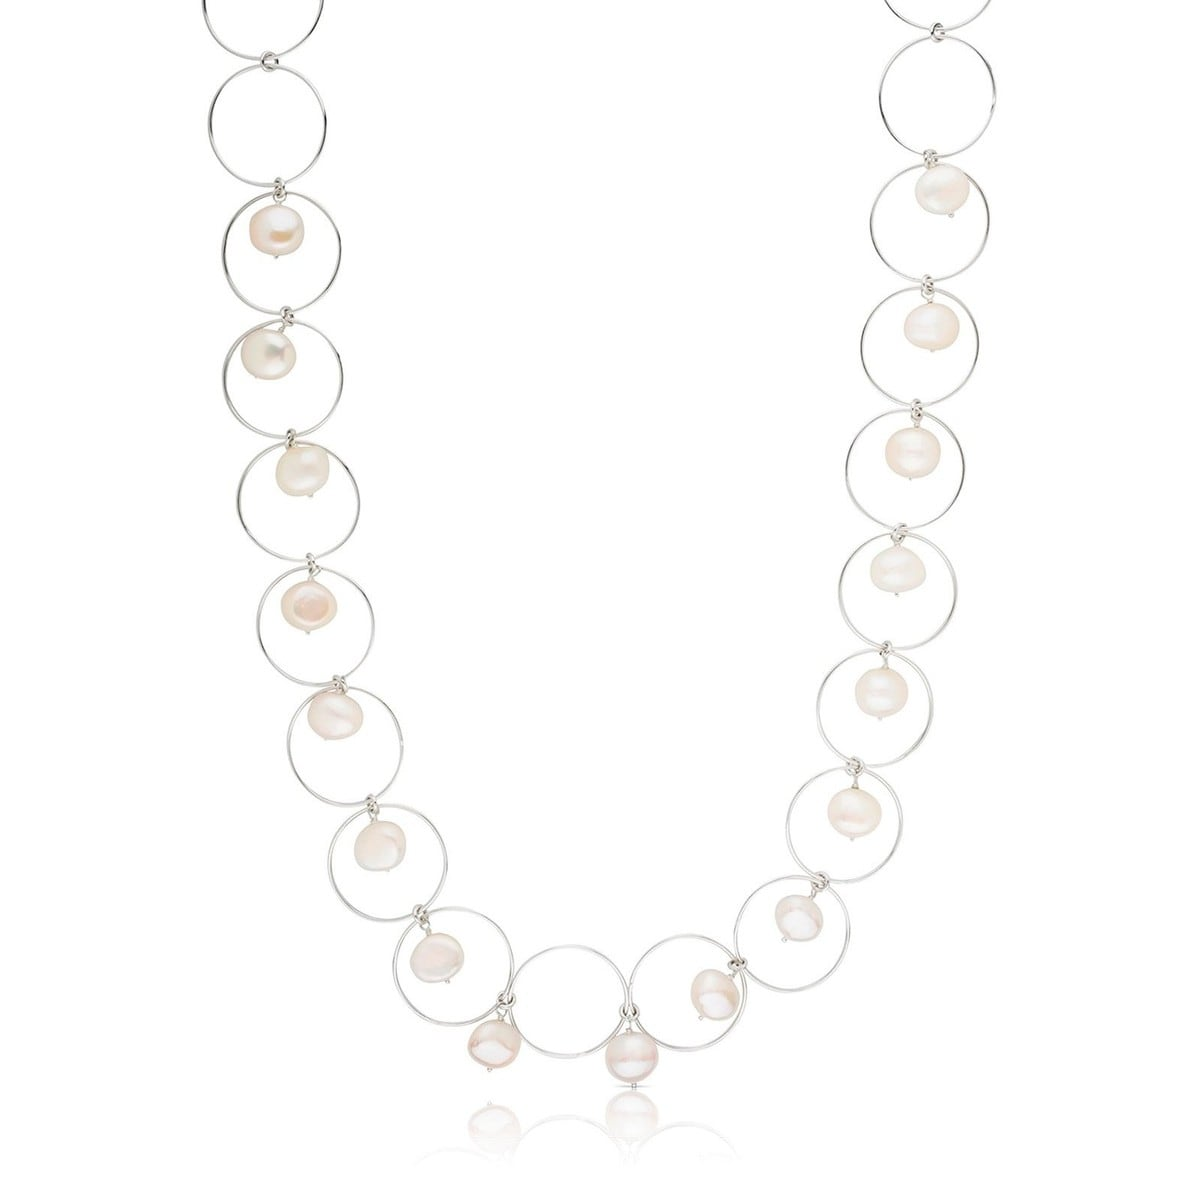 Silver Verona Necklace with Pearl